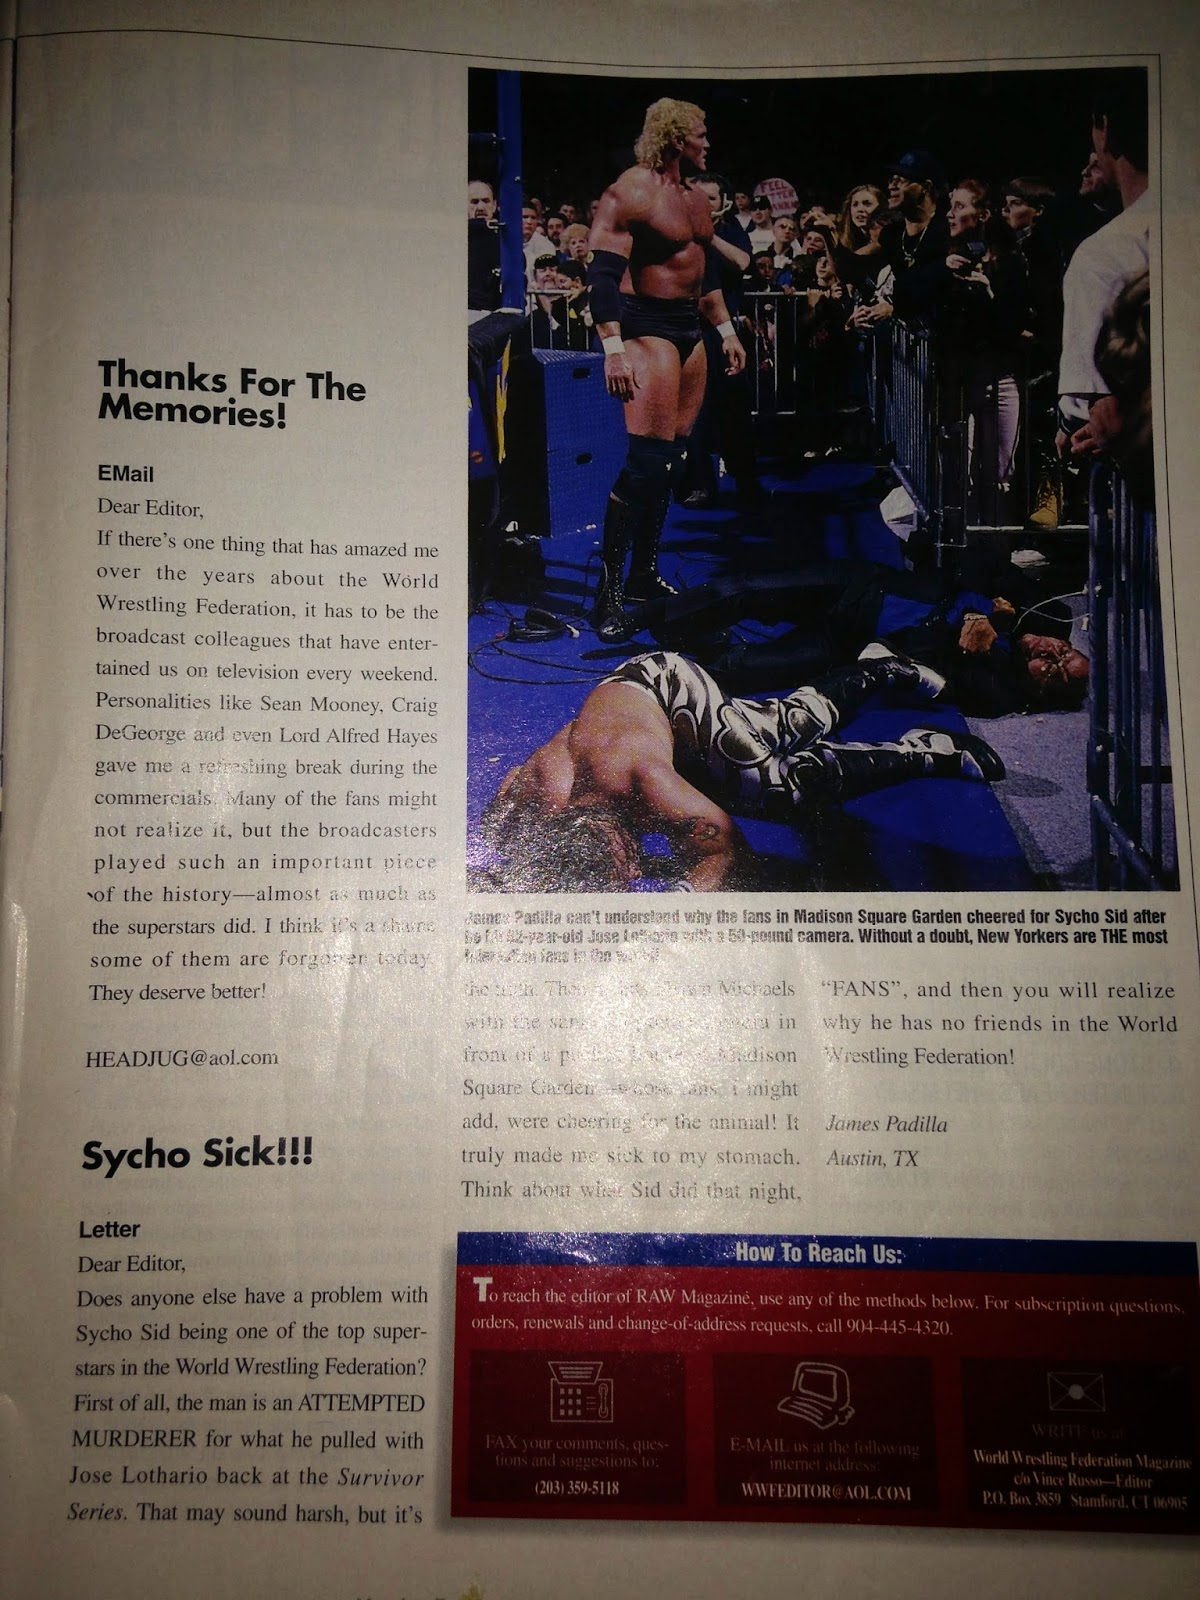 WWE - WWF Raw Magazine - March/April 1997 - Letters to the editor ft. Sycho Sid